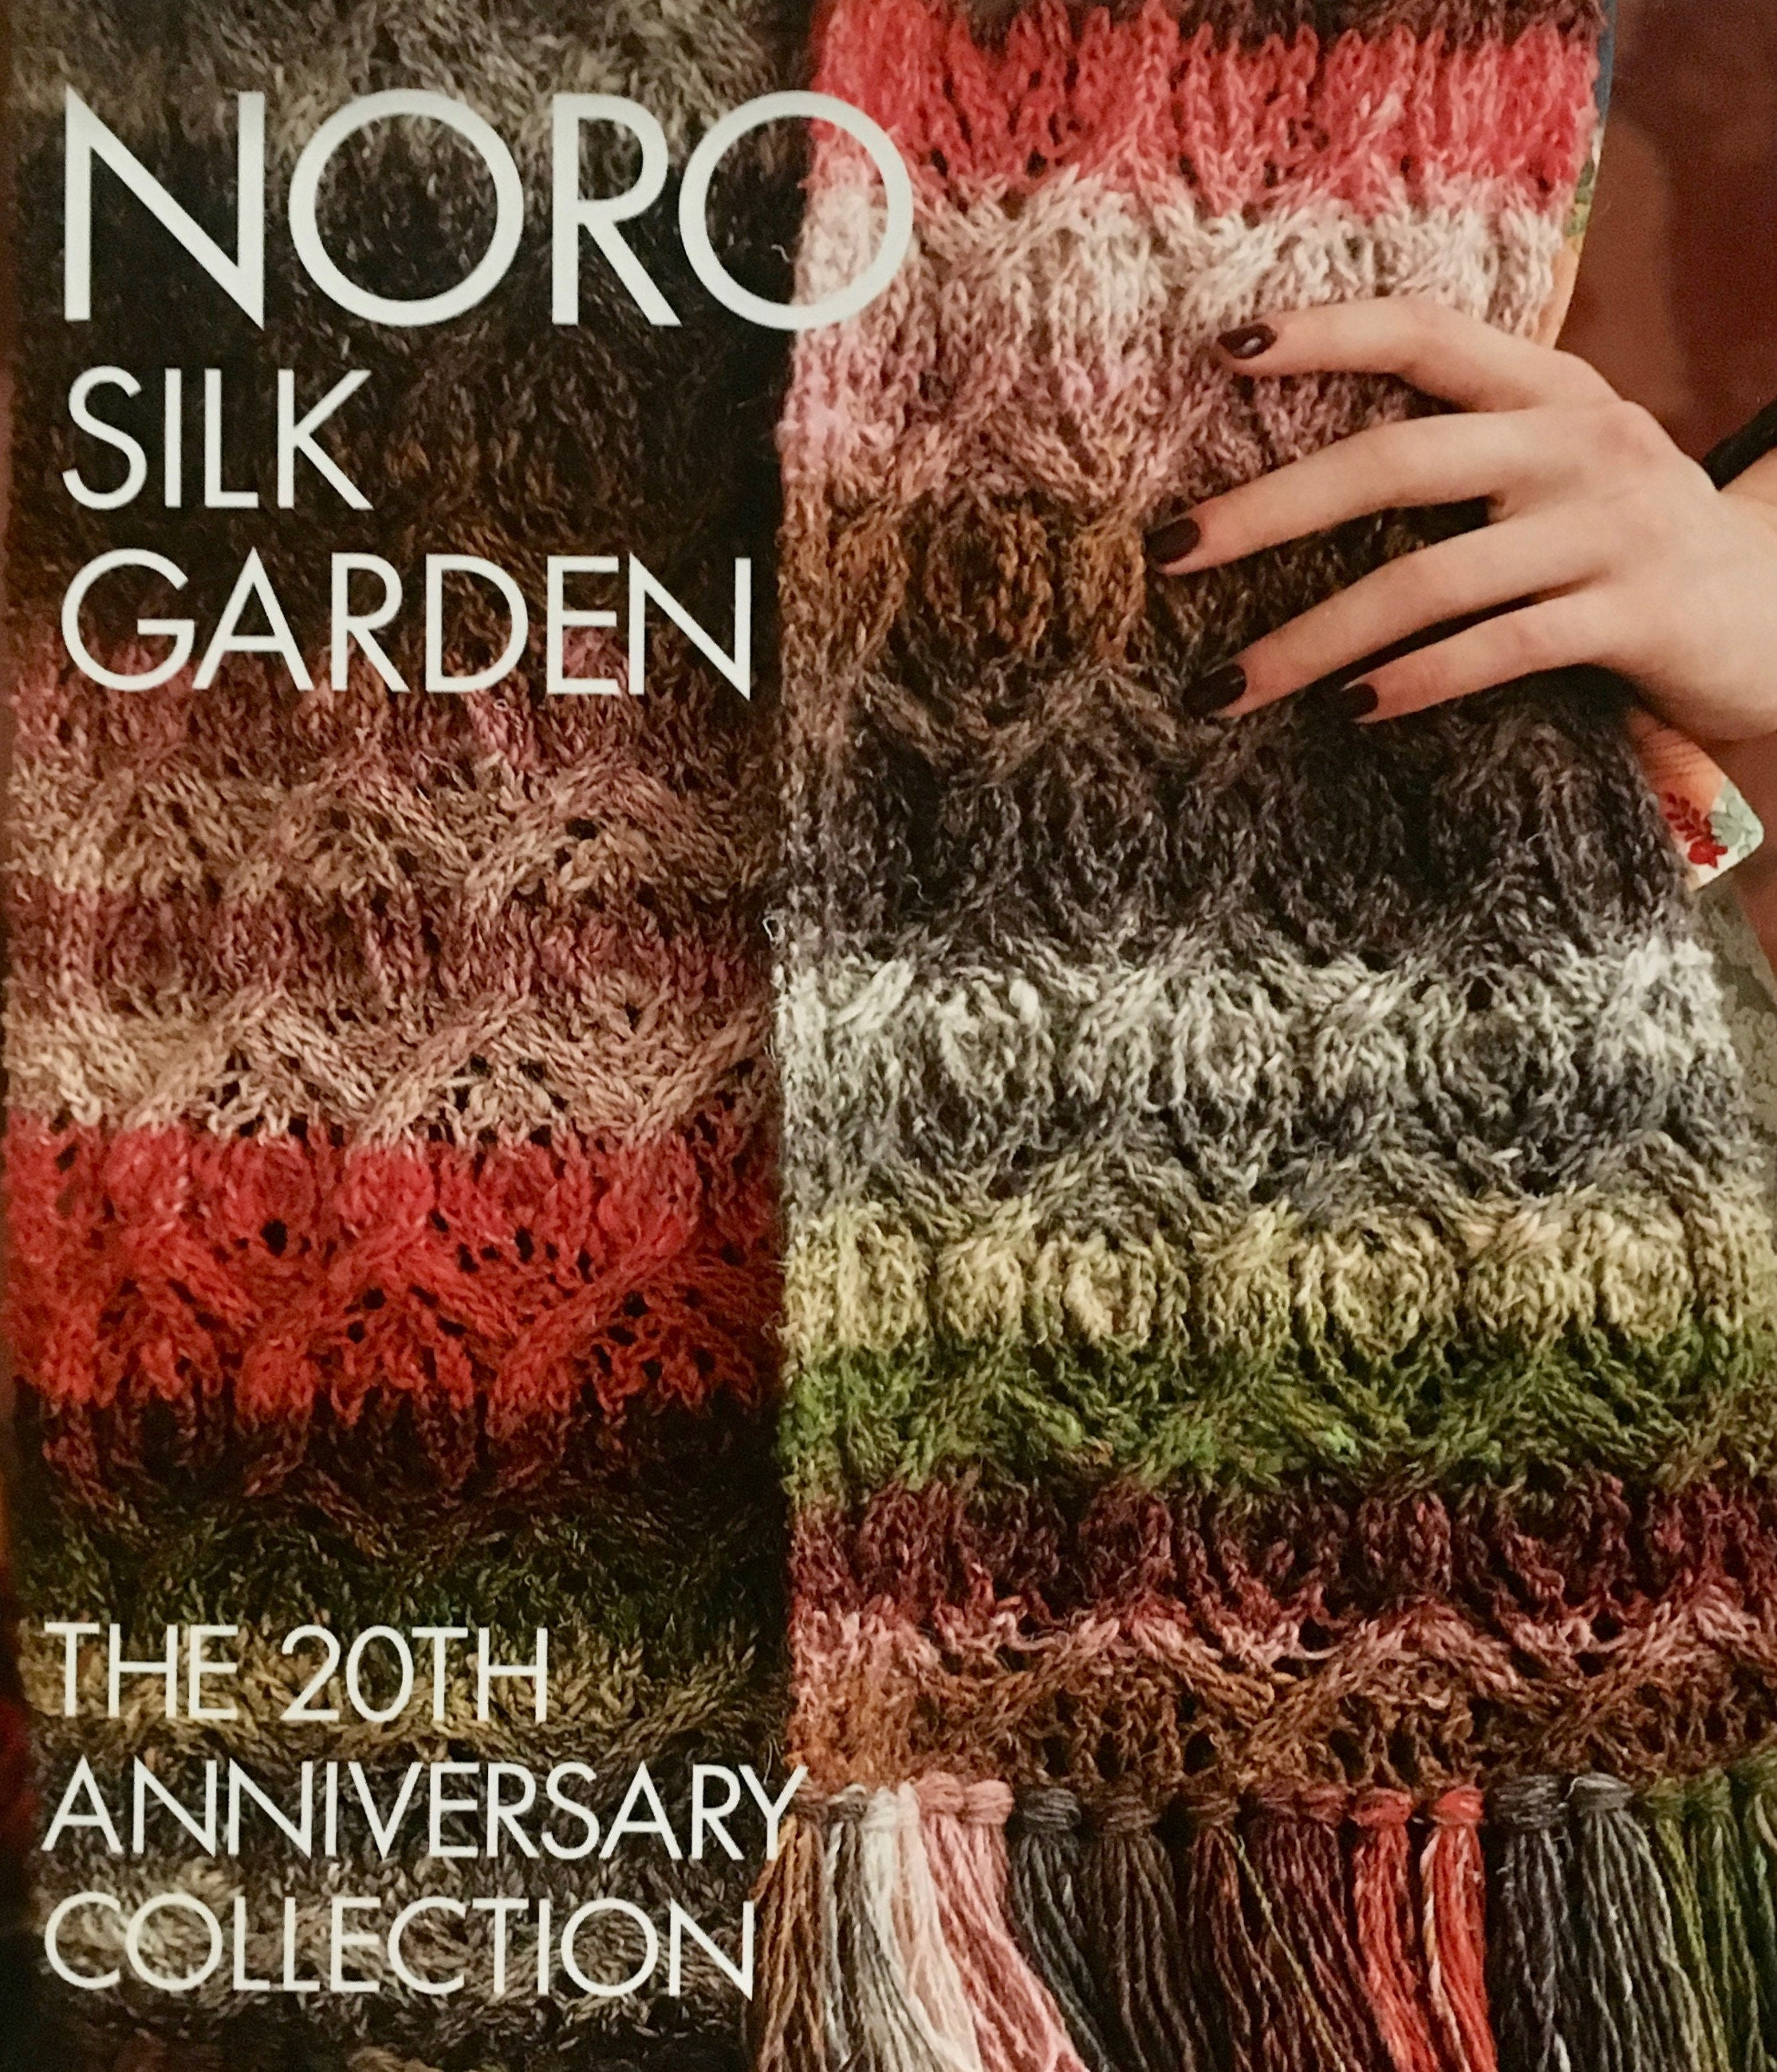 Noro Silk Garden The 20th Anniversary Collection Book of